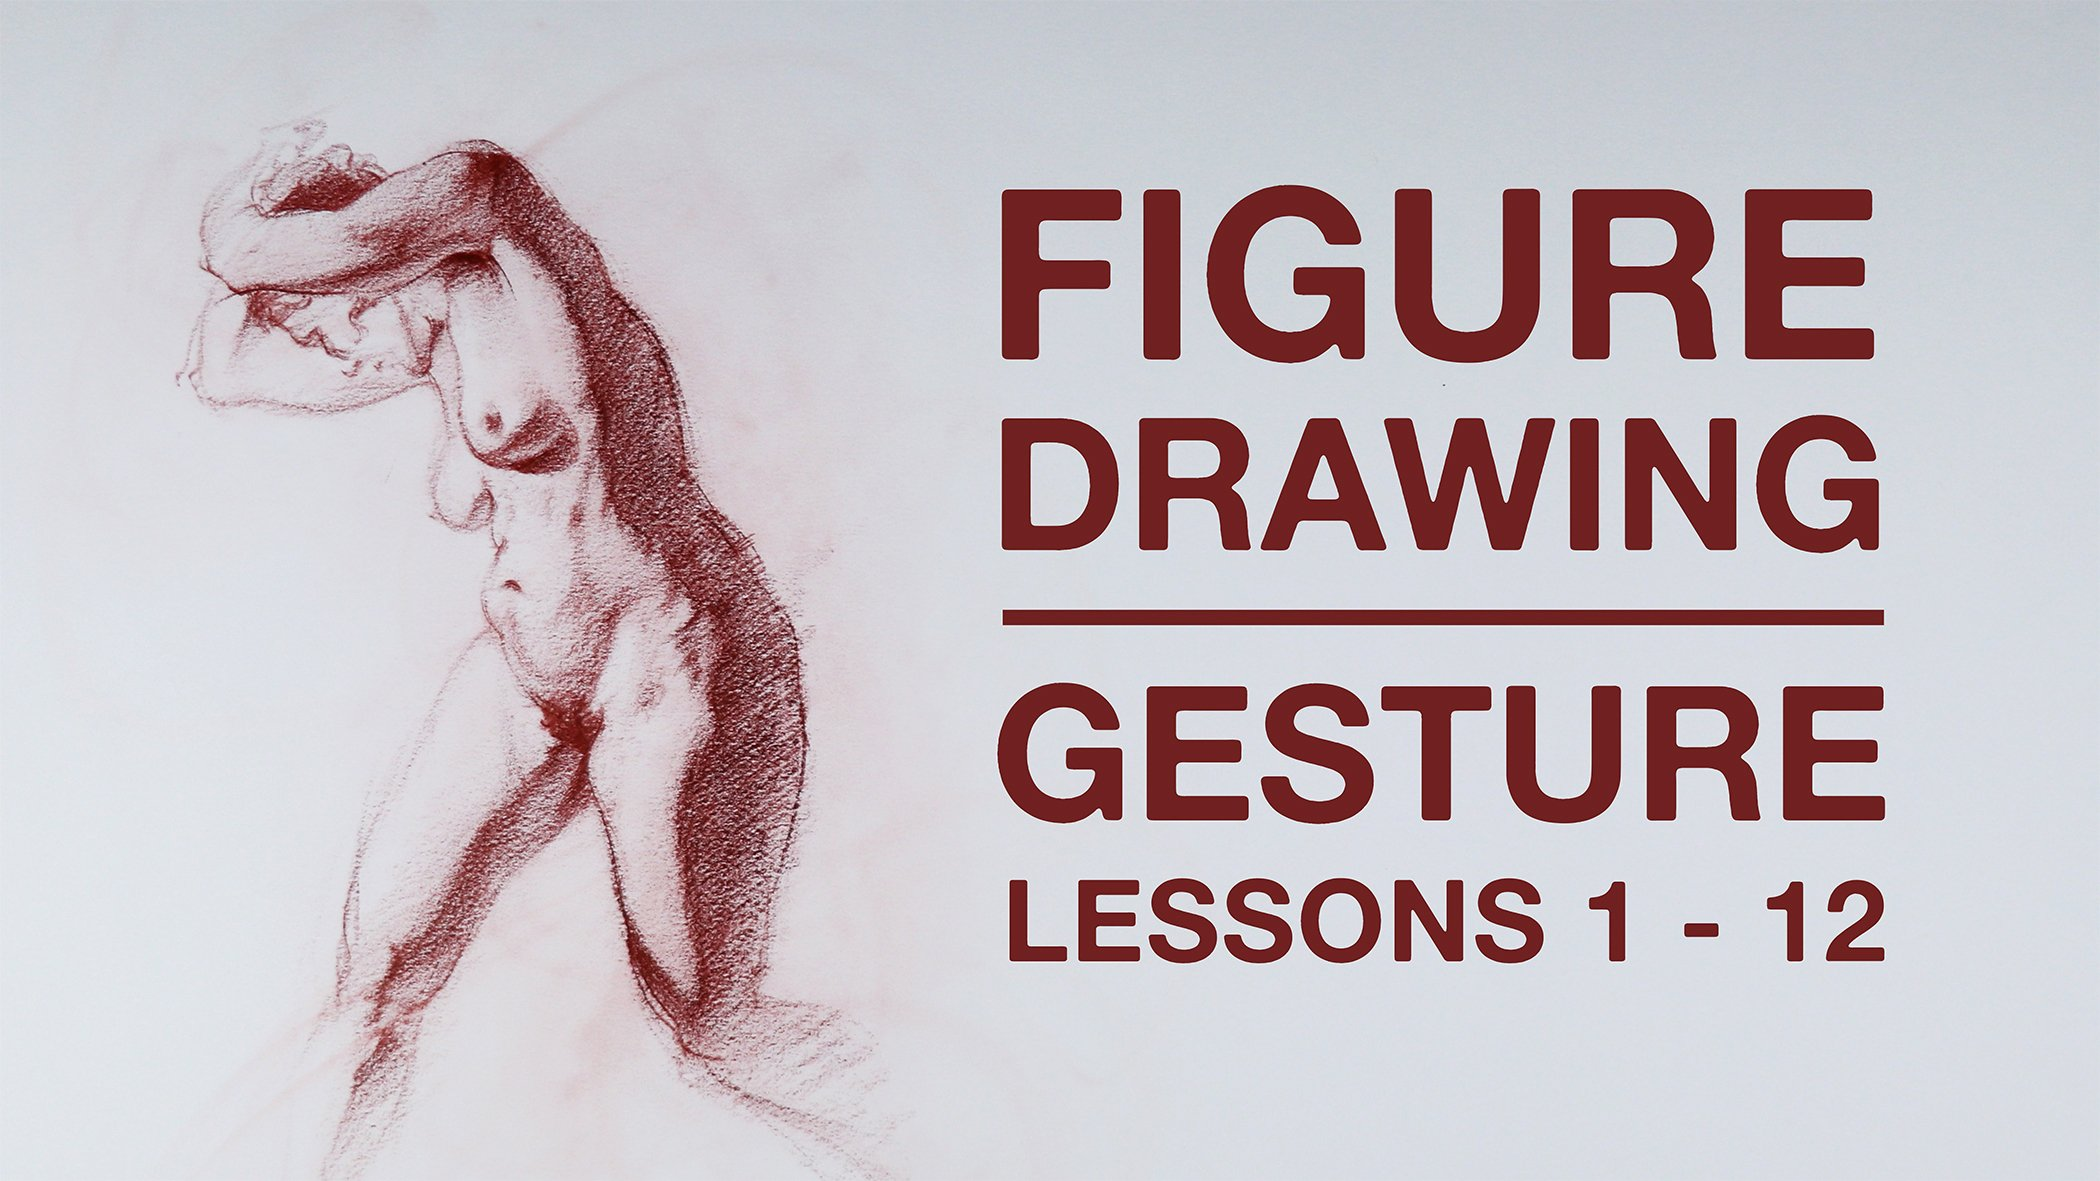 THE ART & SCIENCE OF FIGURE DRAWING / GESTURE Lessons 1 - 12